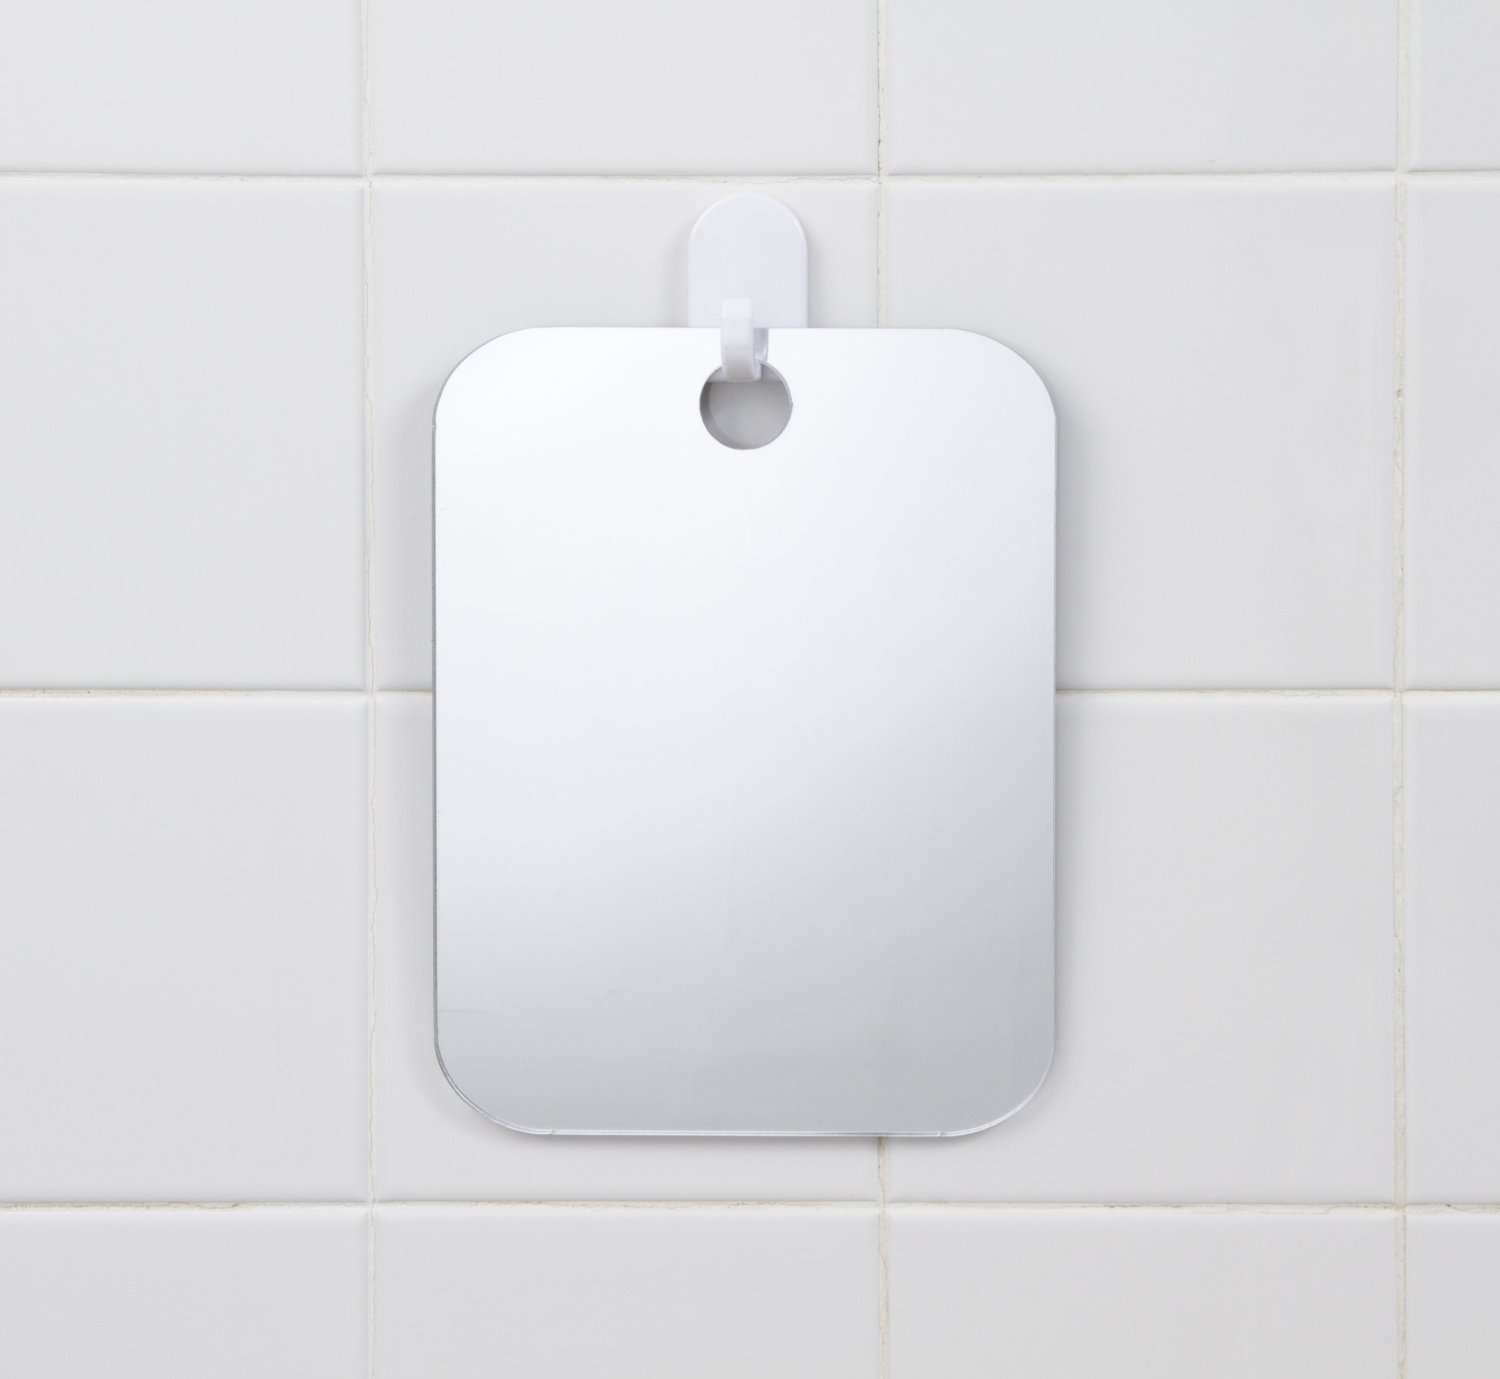 Shave Well Fog Free Shower Mirror